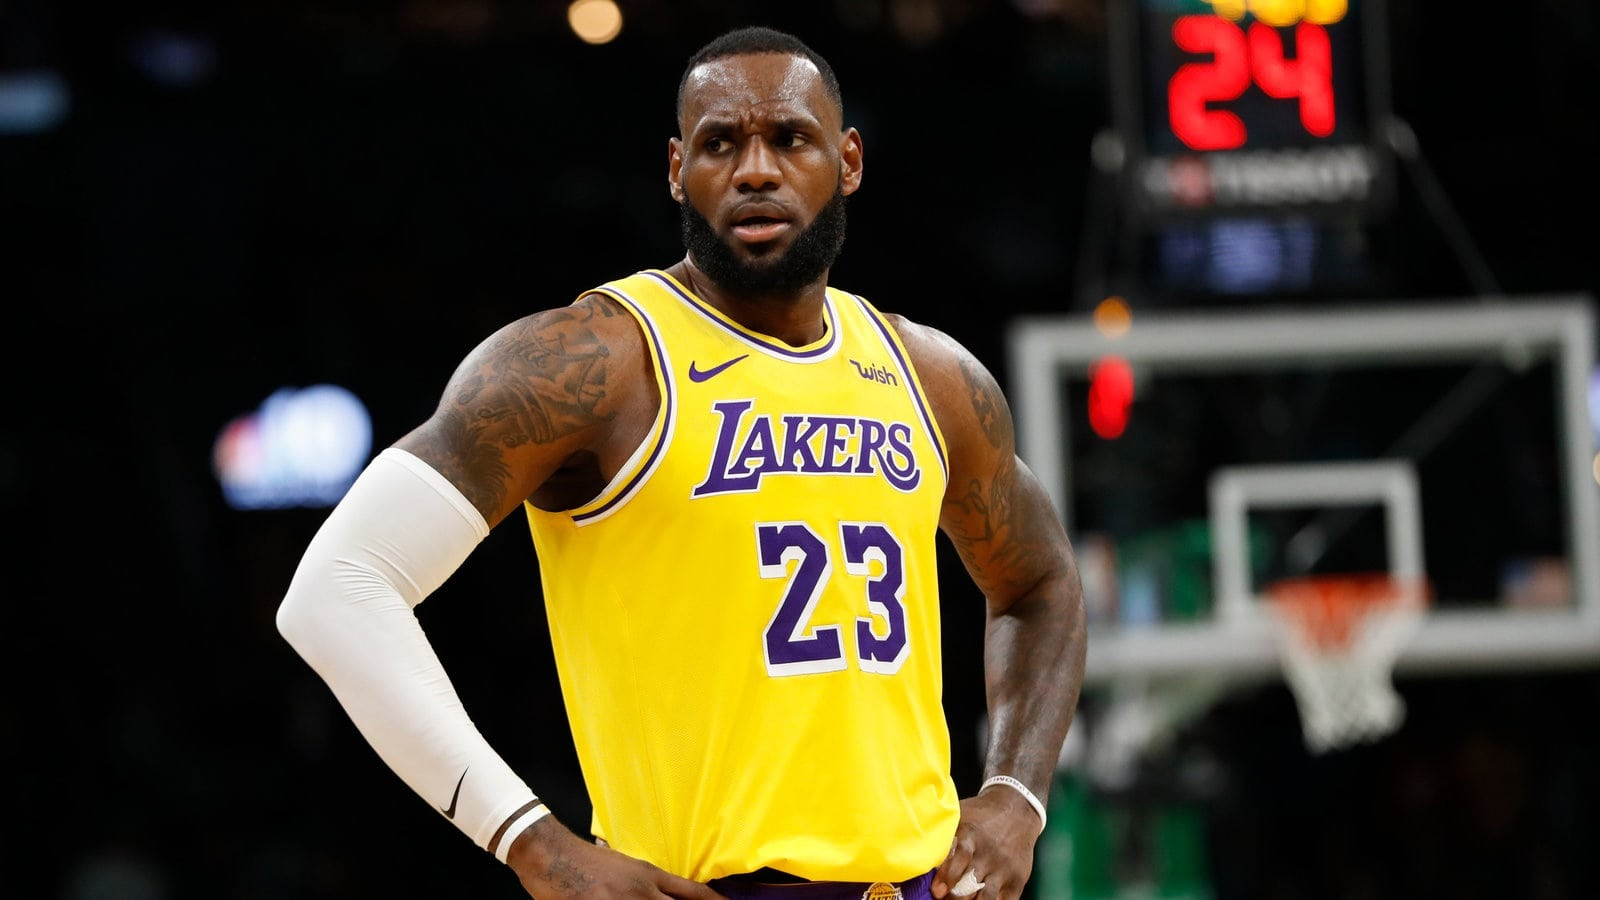 LeBron James Has His Maxine Waters Moment